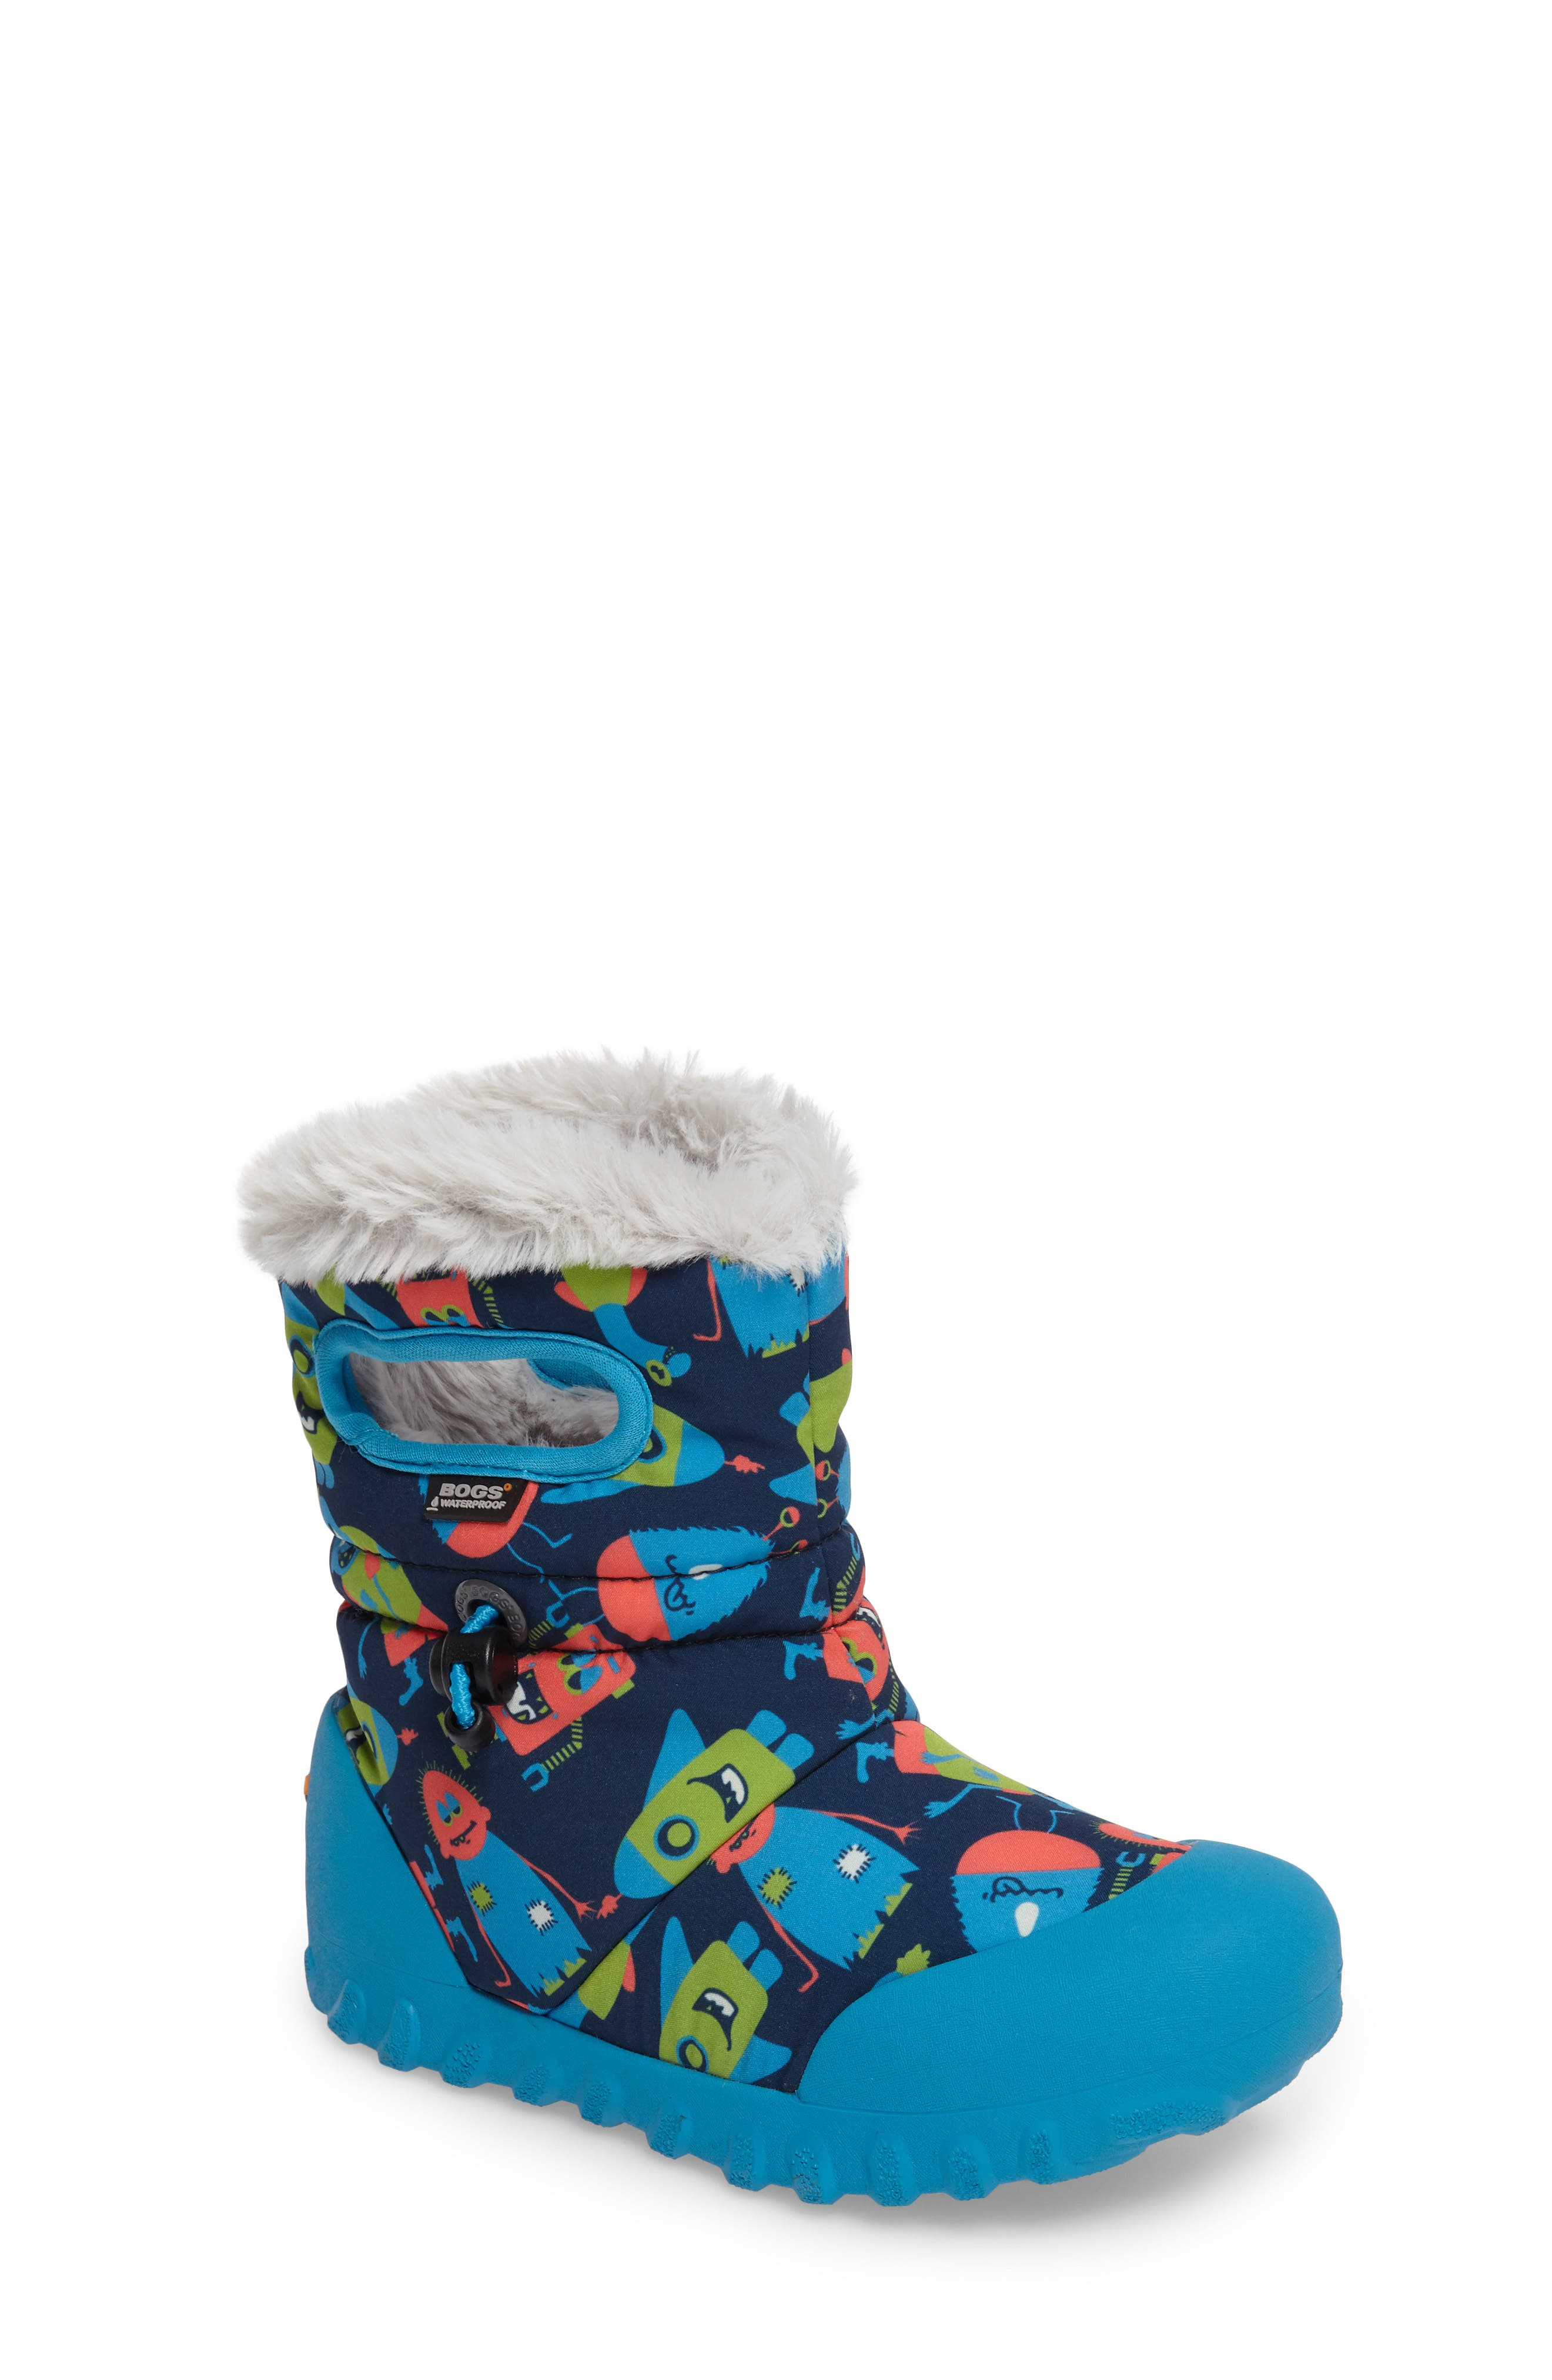 Alternate Image 1 Selected - Bogs B-MOC Monsters Waterproof Insulated Faux Fur Boot (Toddler & Little Kid)